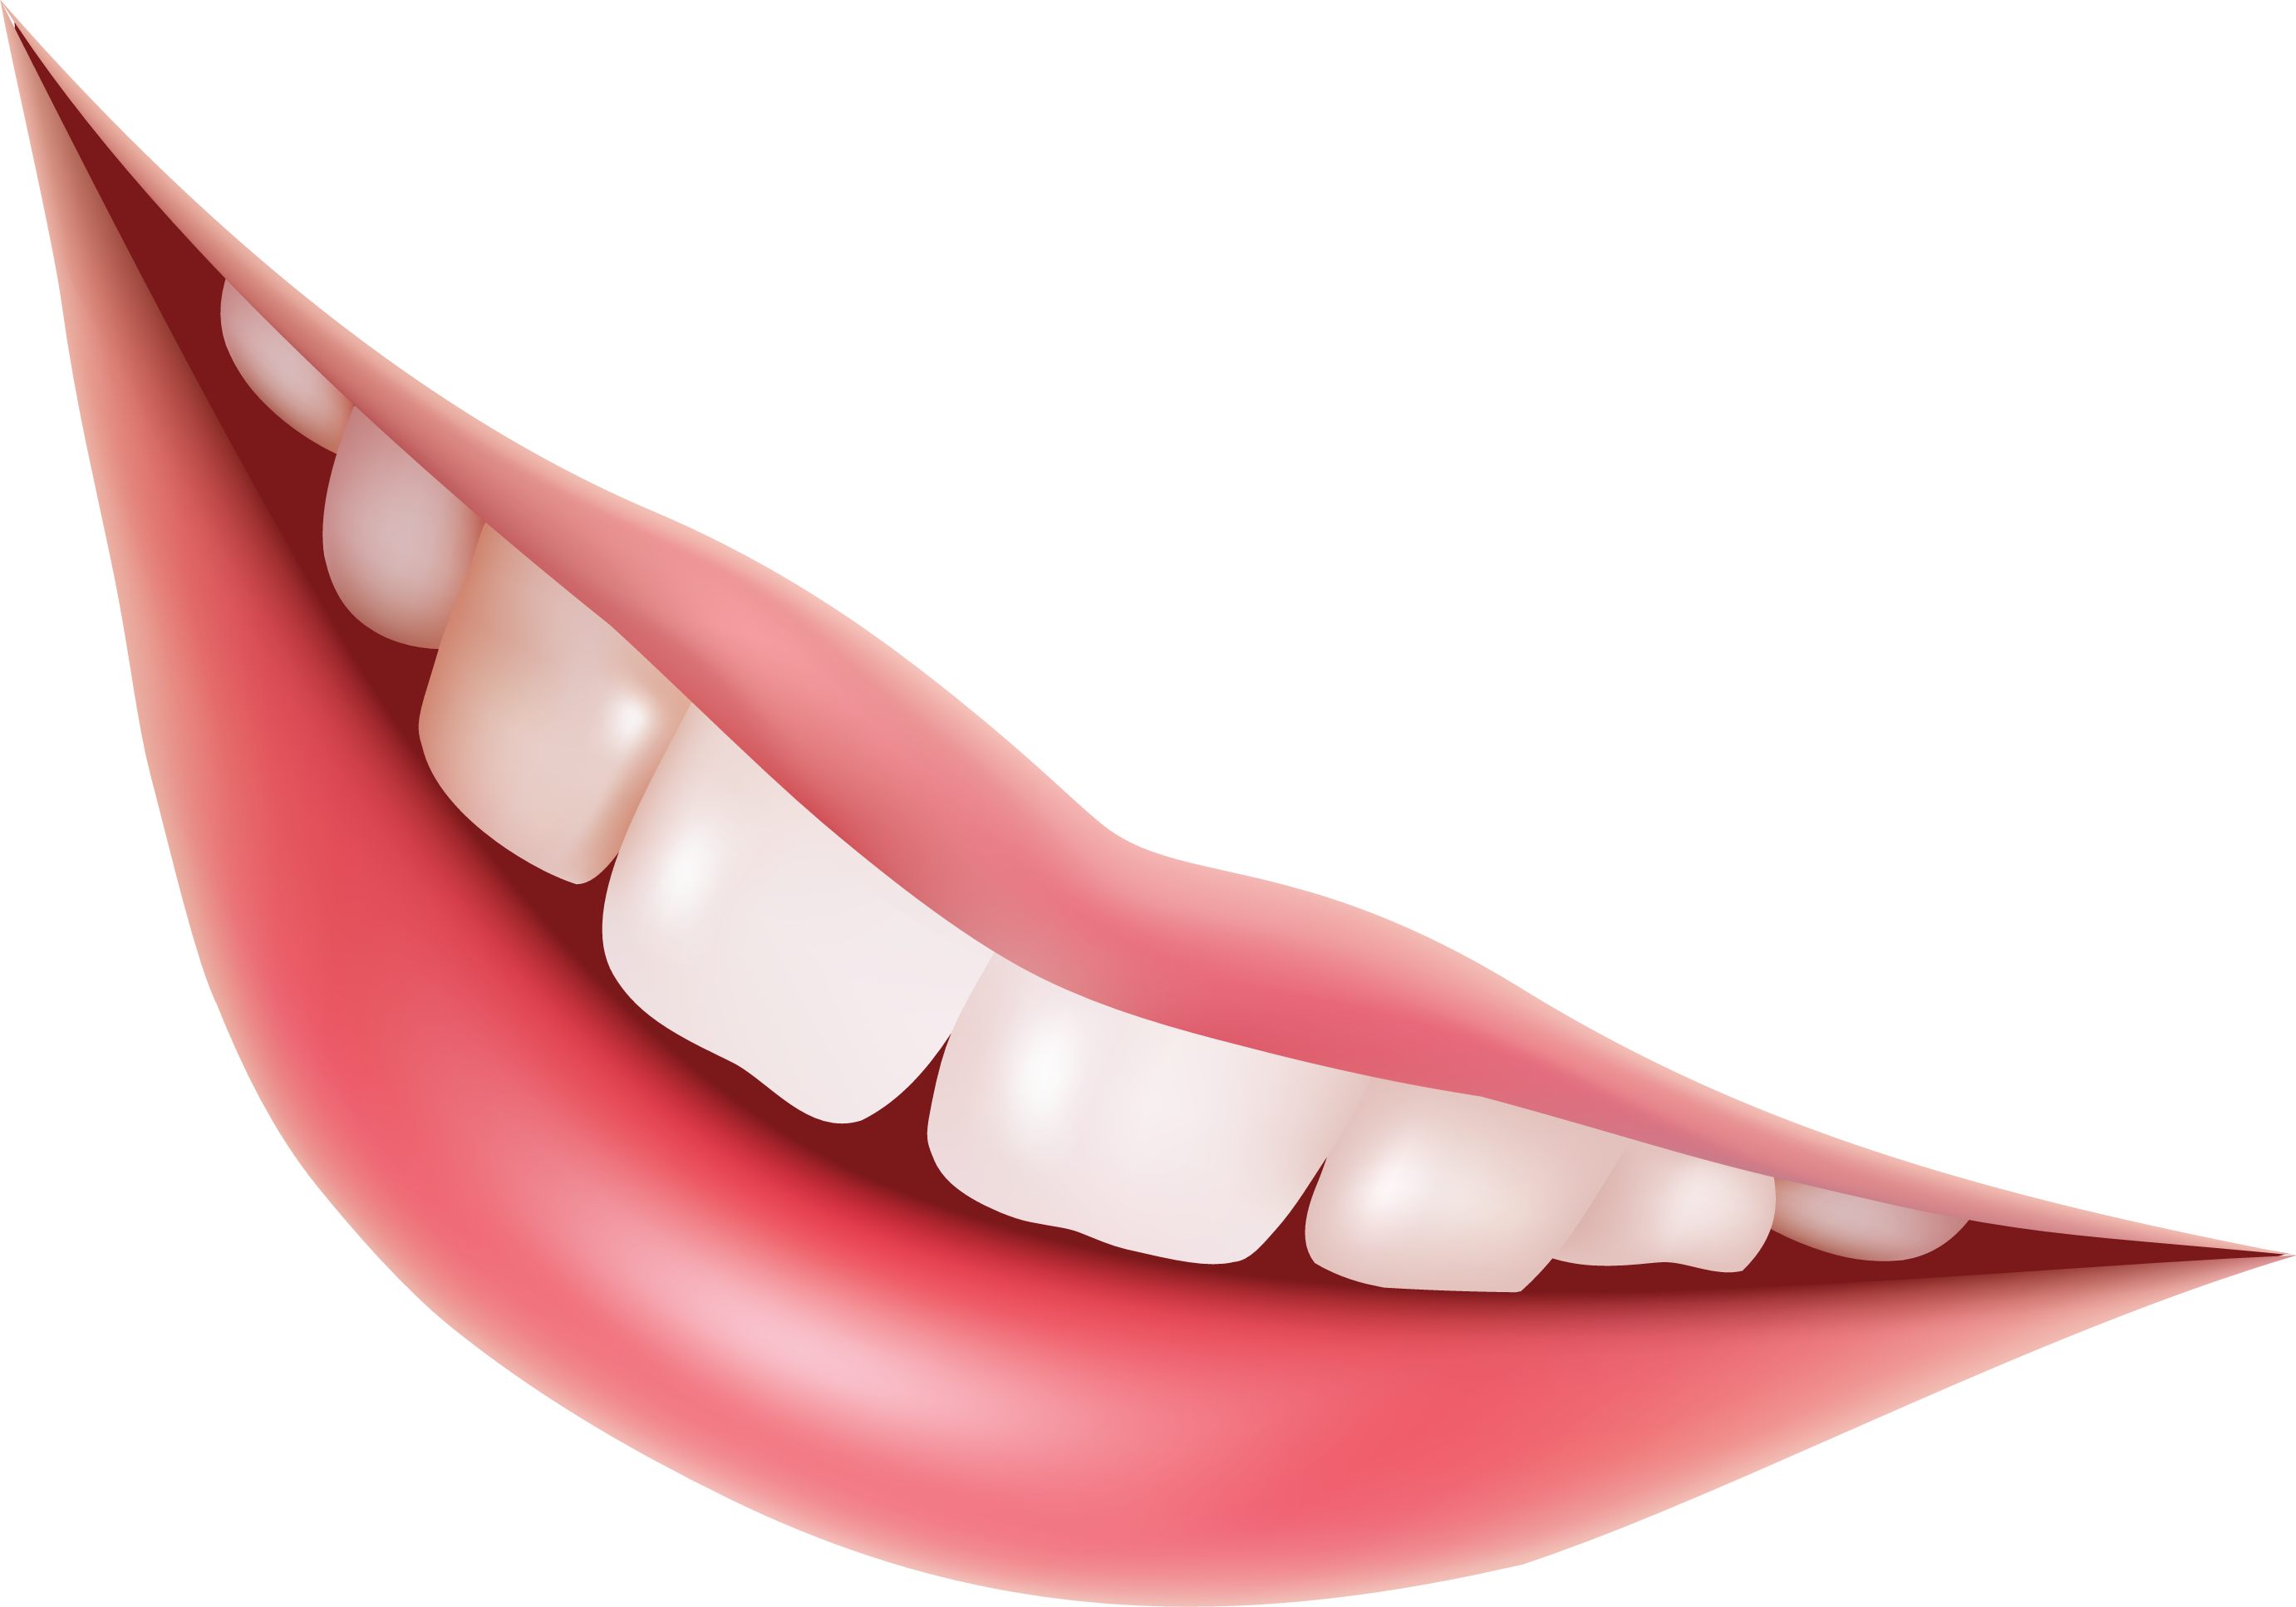 Hd Teeth Png Transparent Background image #46546